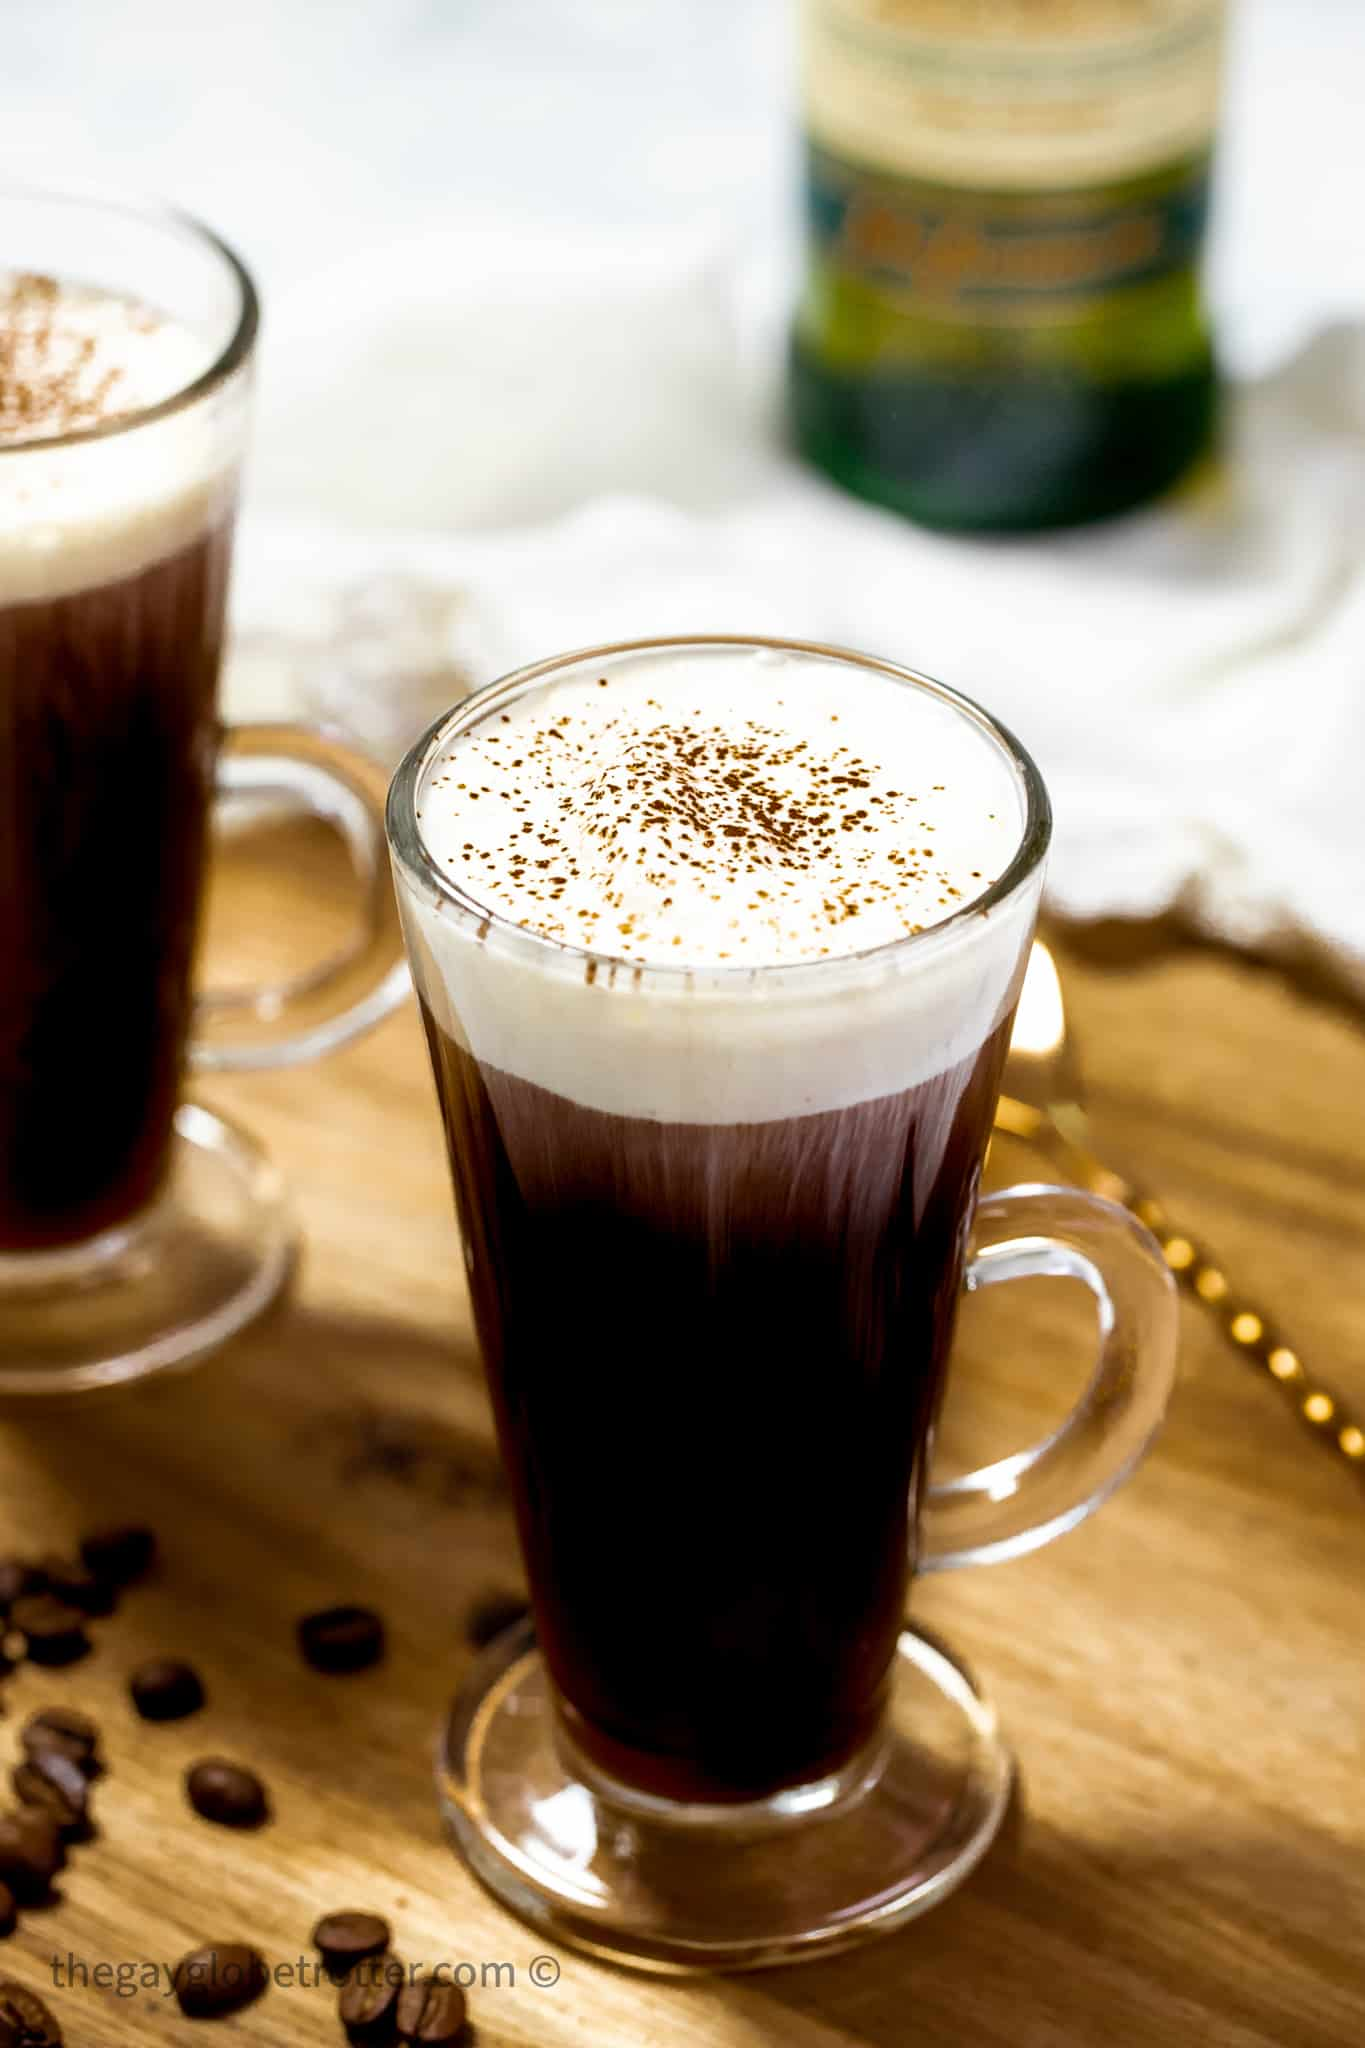 2 cups of Irish coffee next to a stirring spoon.